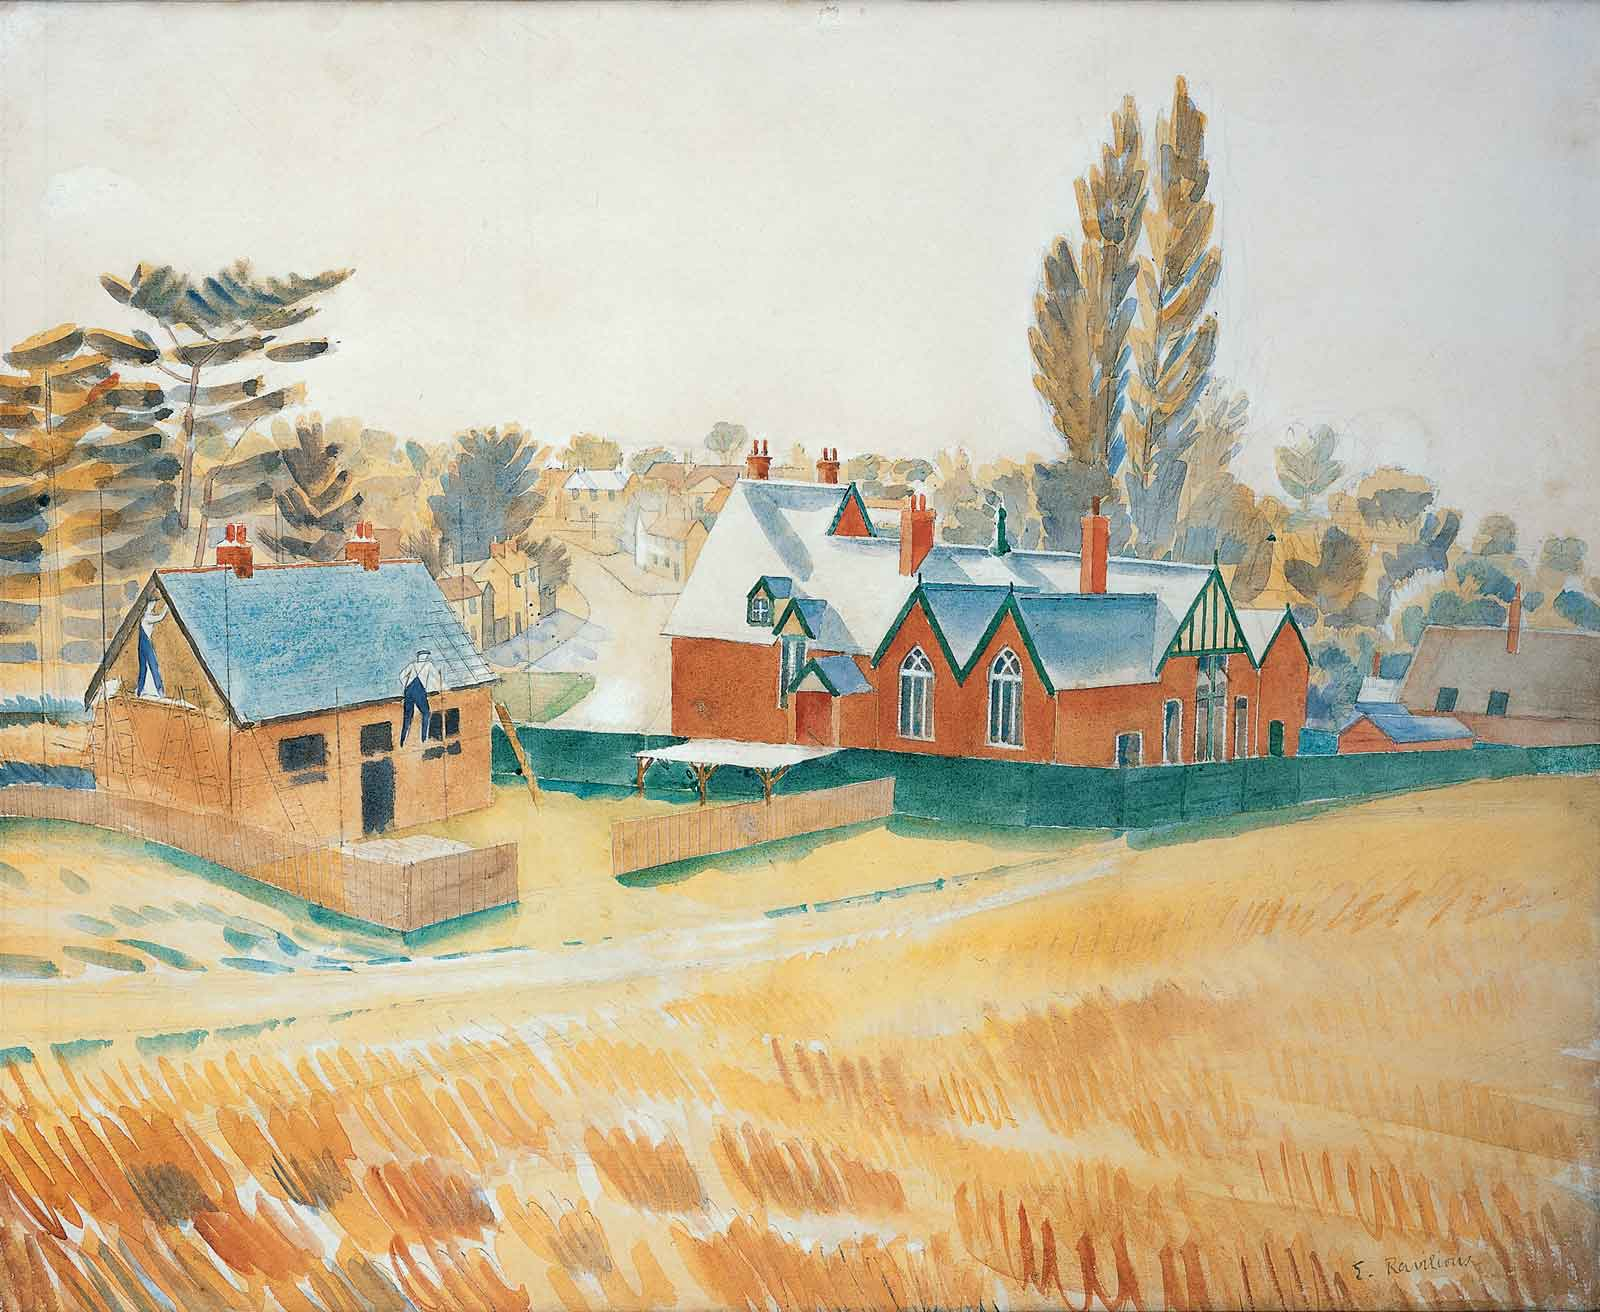 Painting showing a red brick building next to a tan coloured bungalow surrounded by fields of wheat